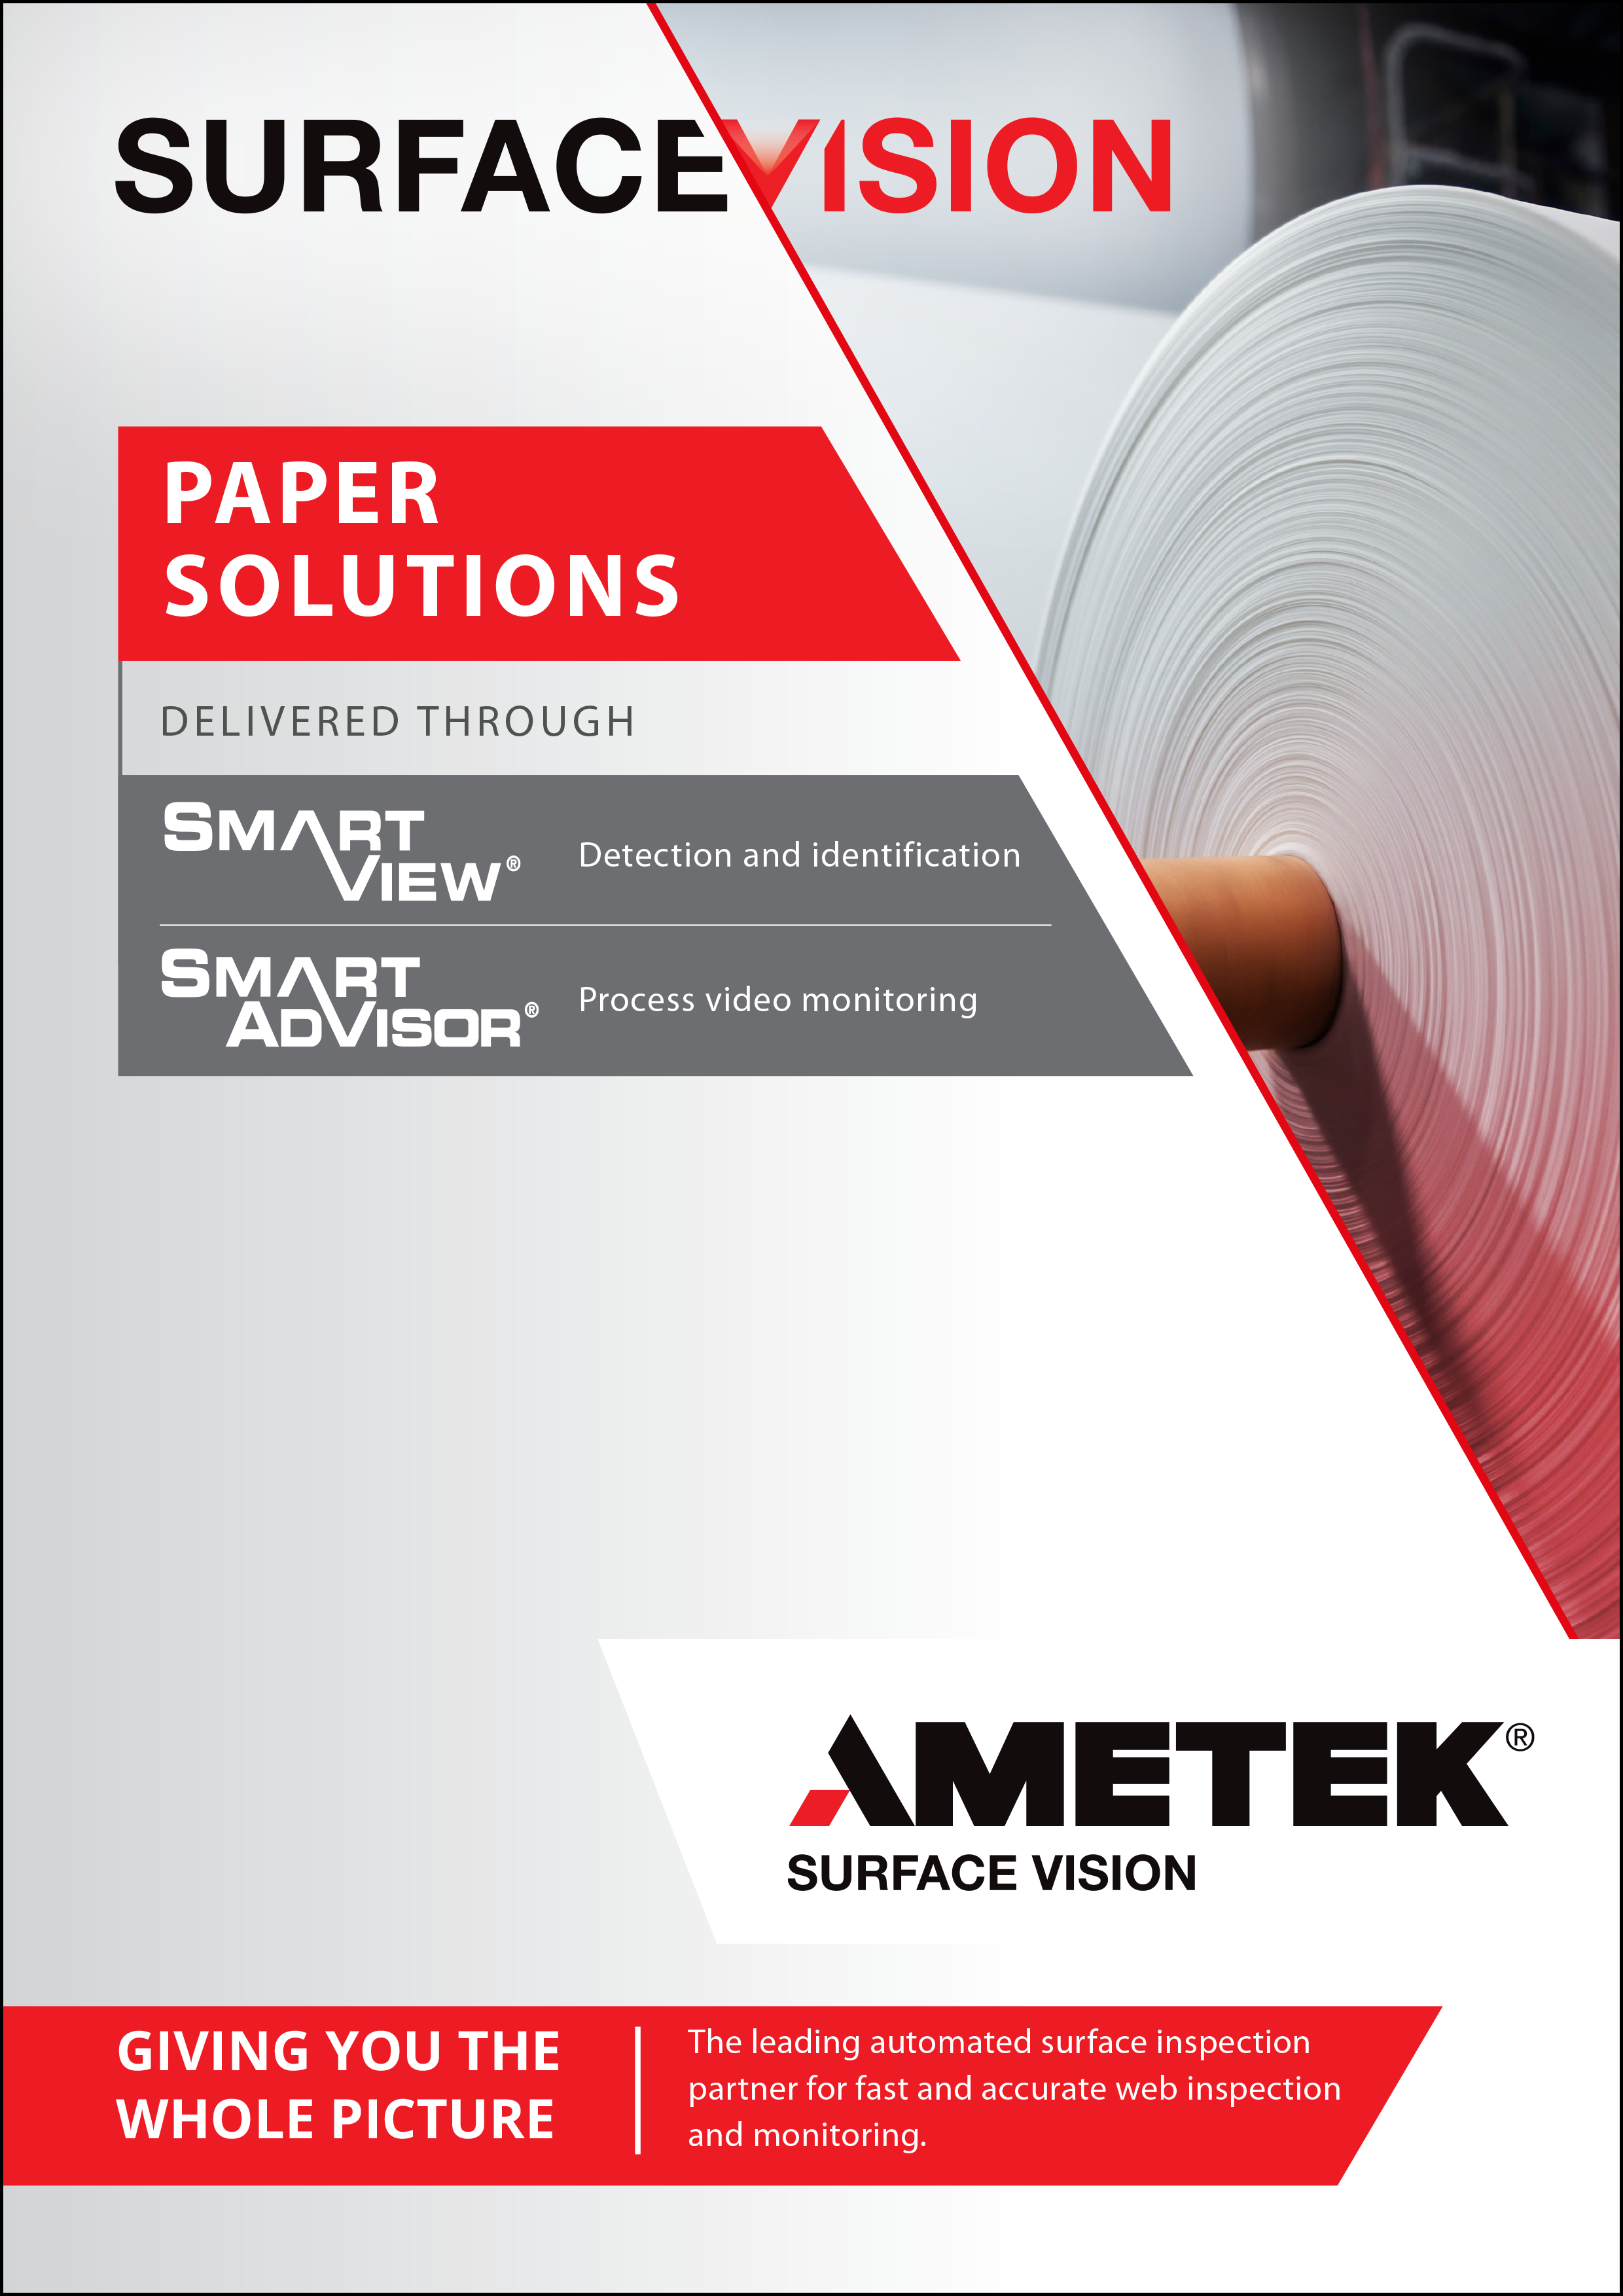 AMETEK Surface Vision - Paper Solutions Brochure